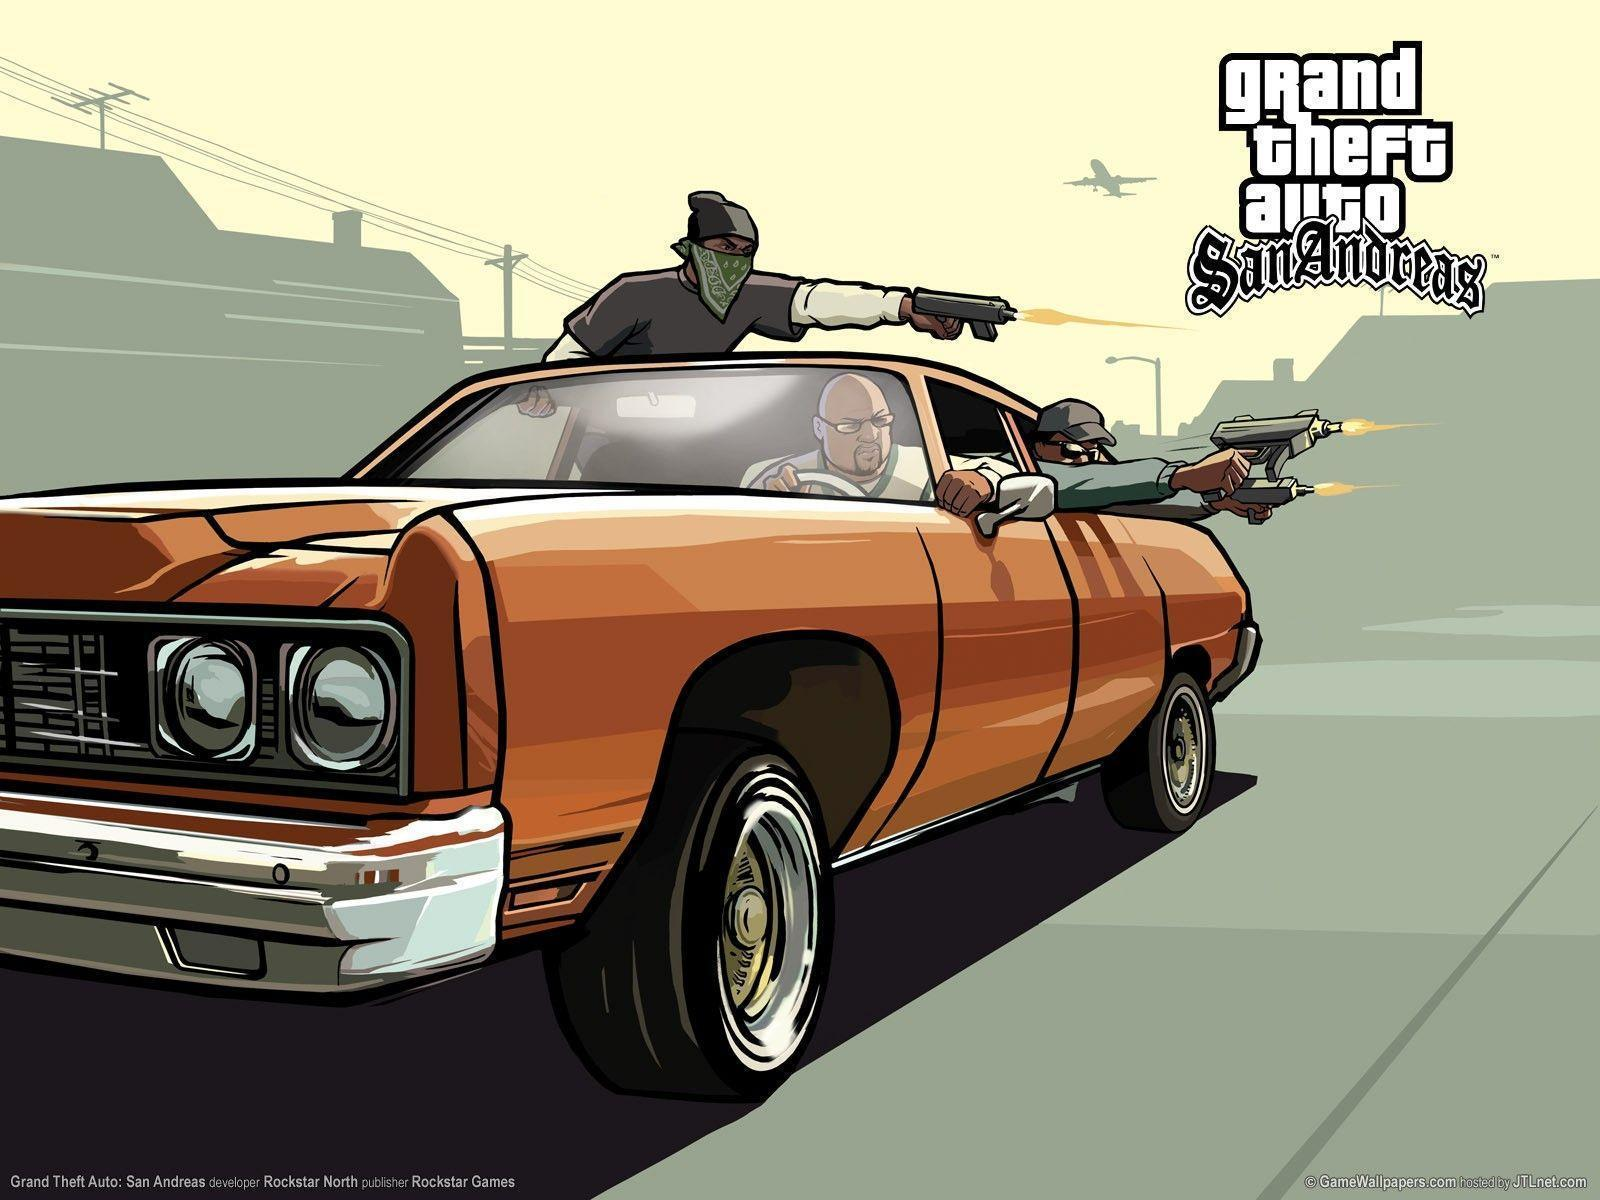 13 Grand Theft Auto: San Andreas HD Wallpapers